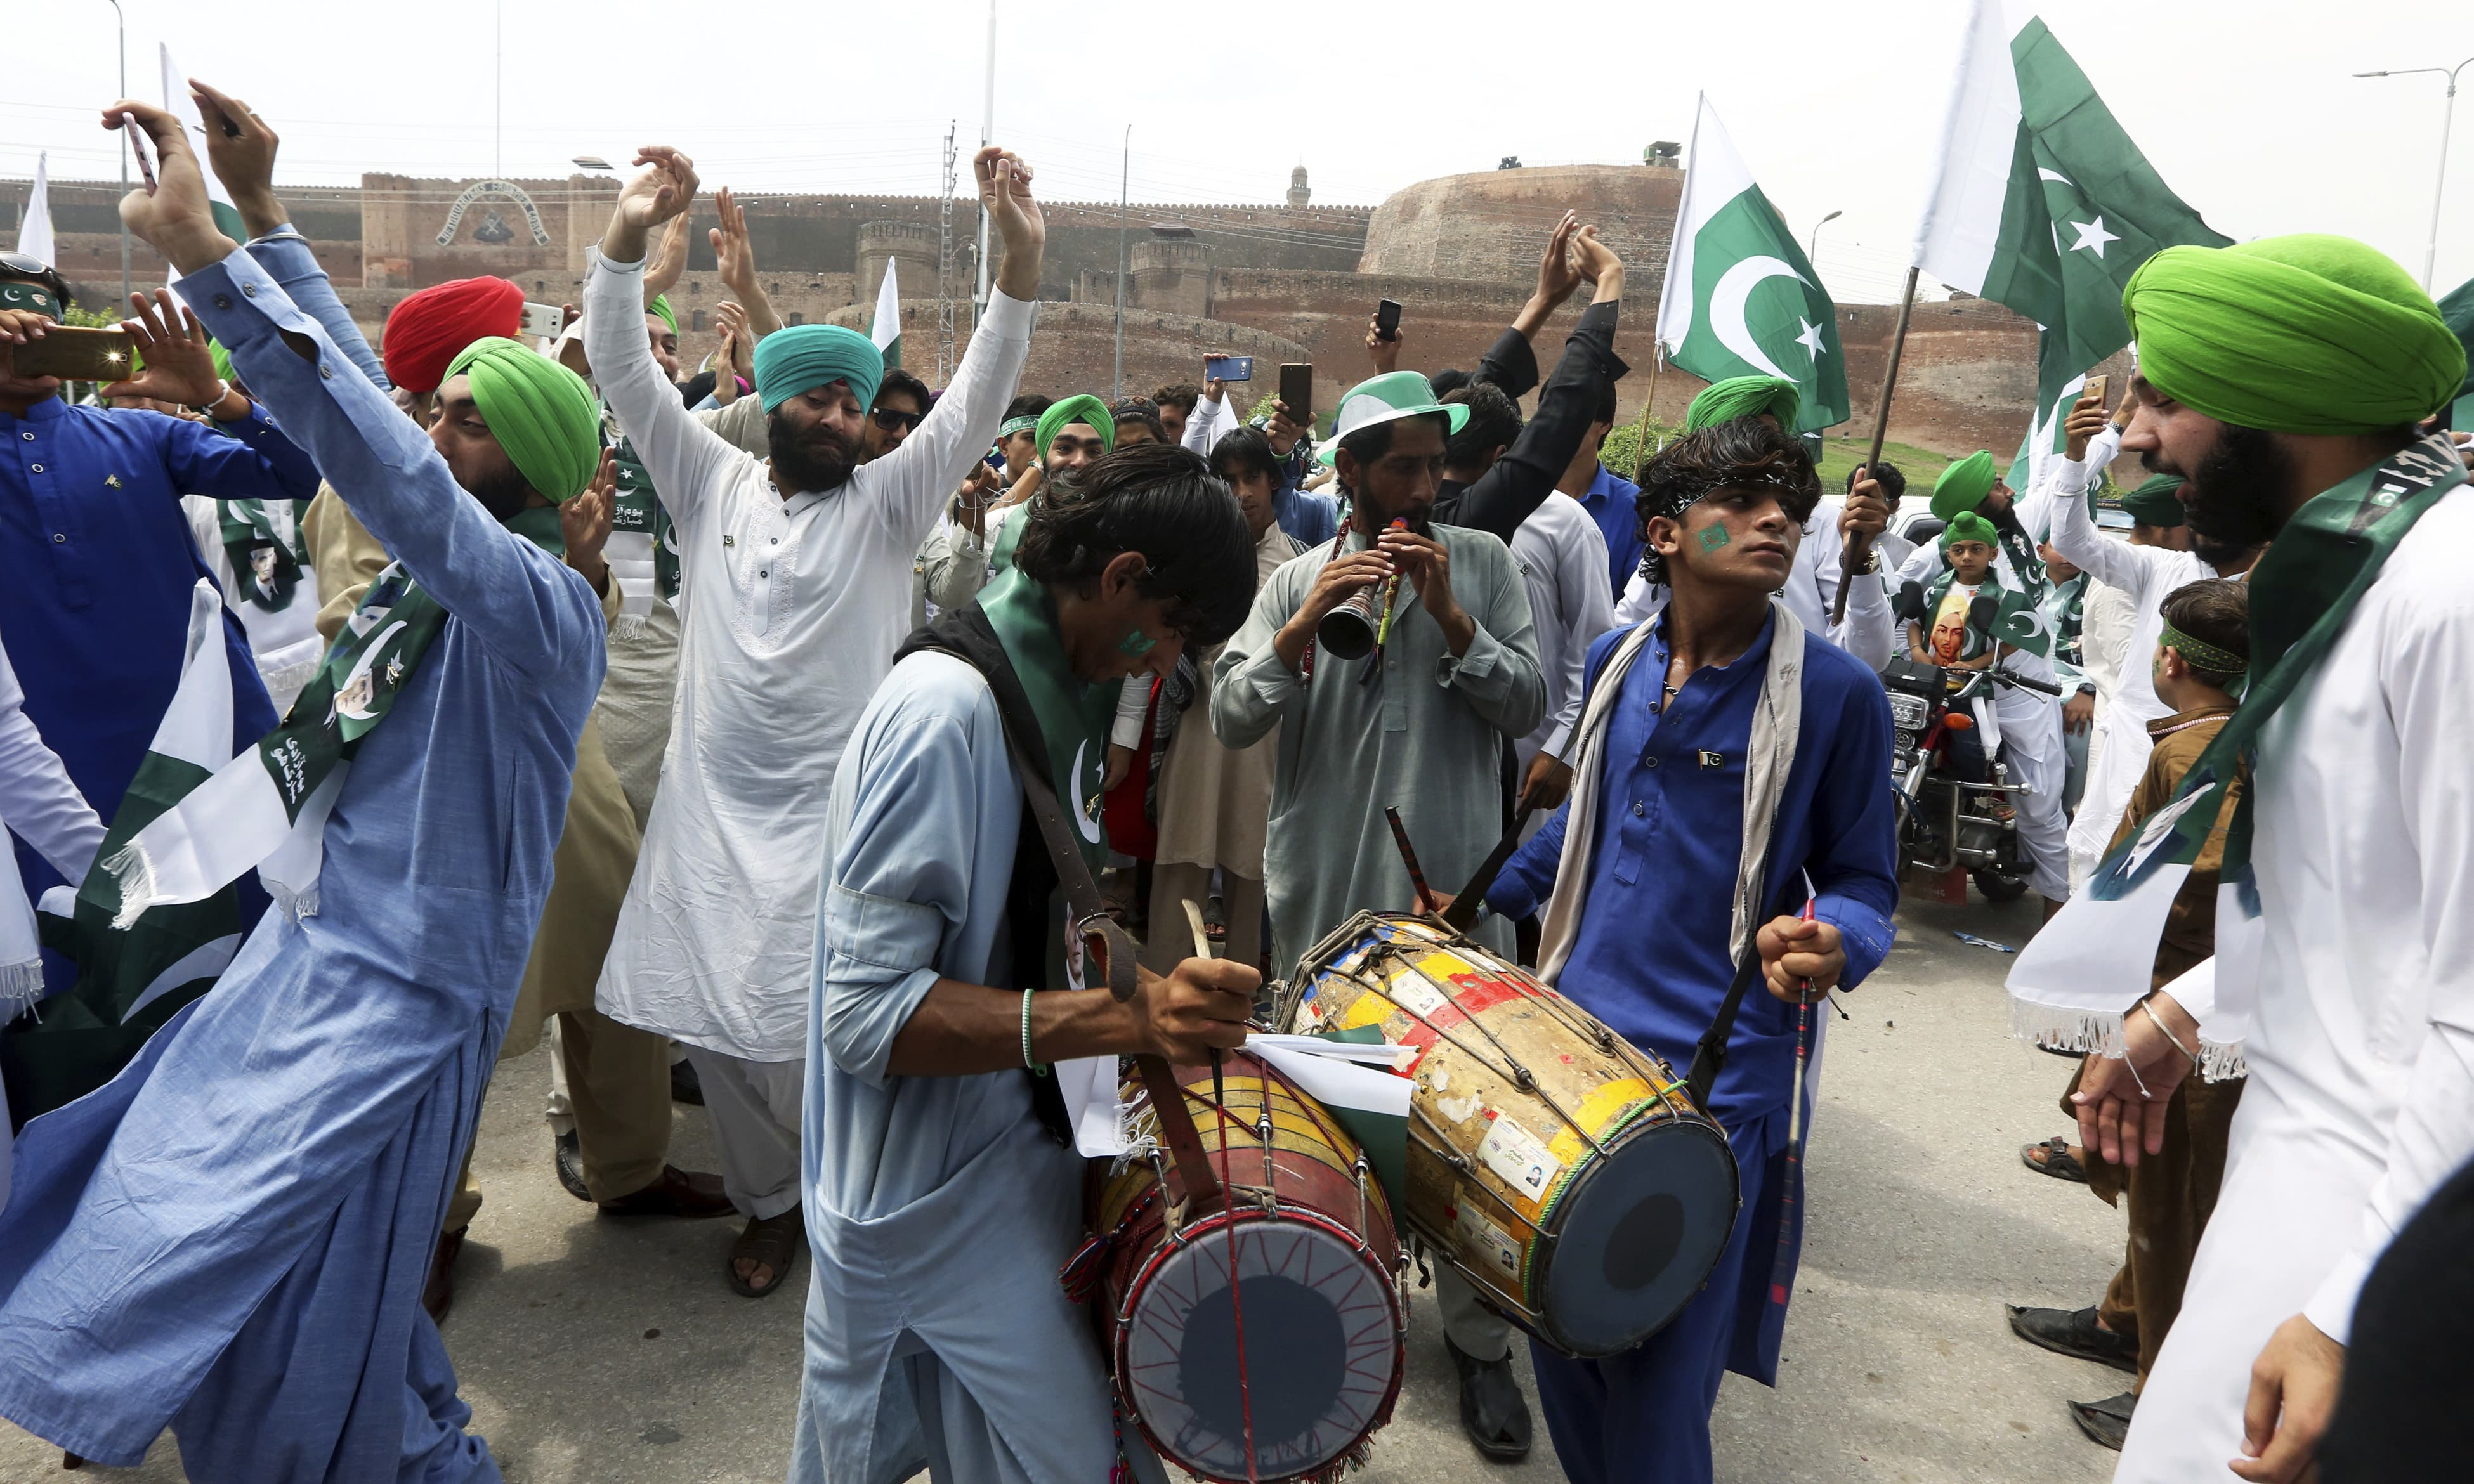 People from the Pakistani Sikh community celebrate the 70th Independence Day in Peshawar. —AP